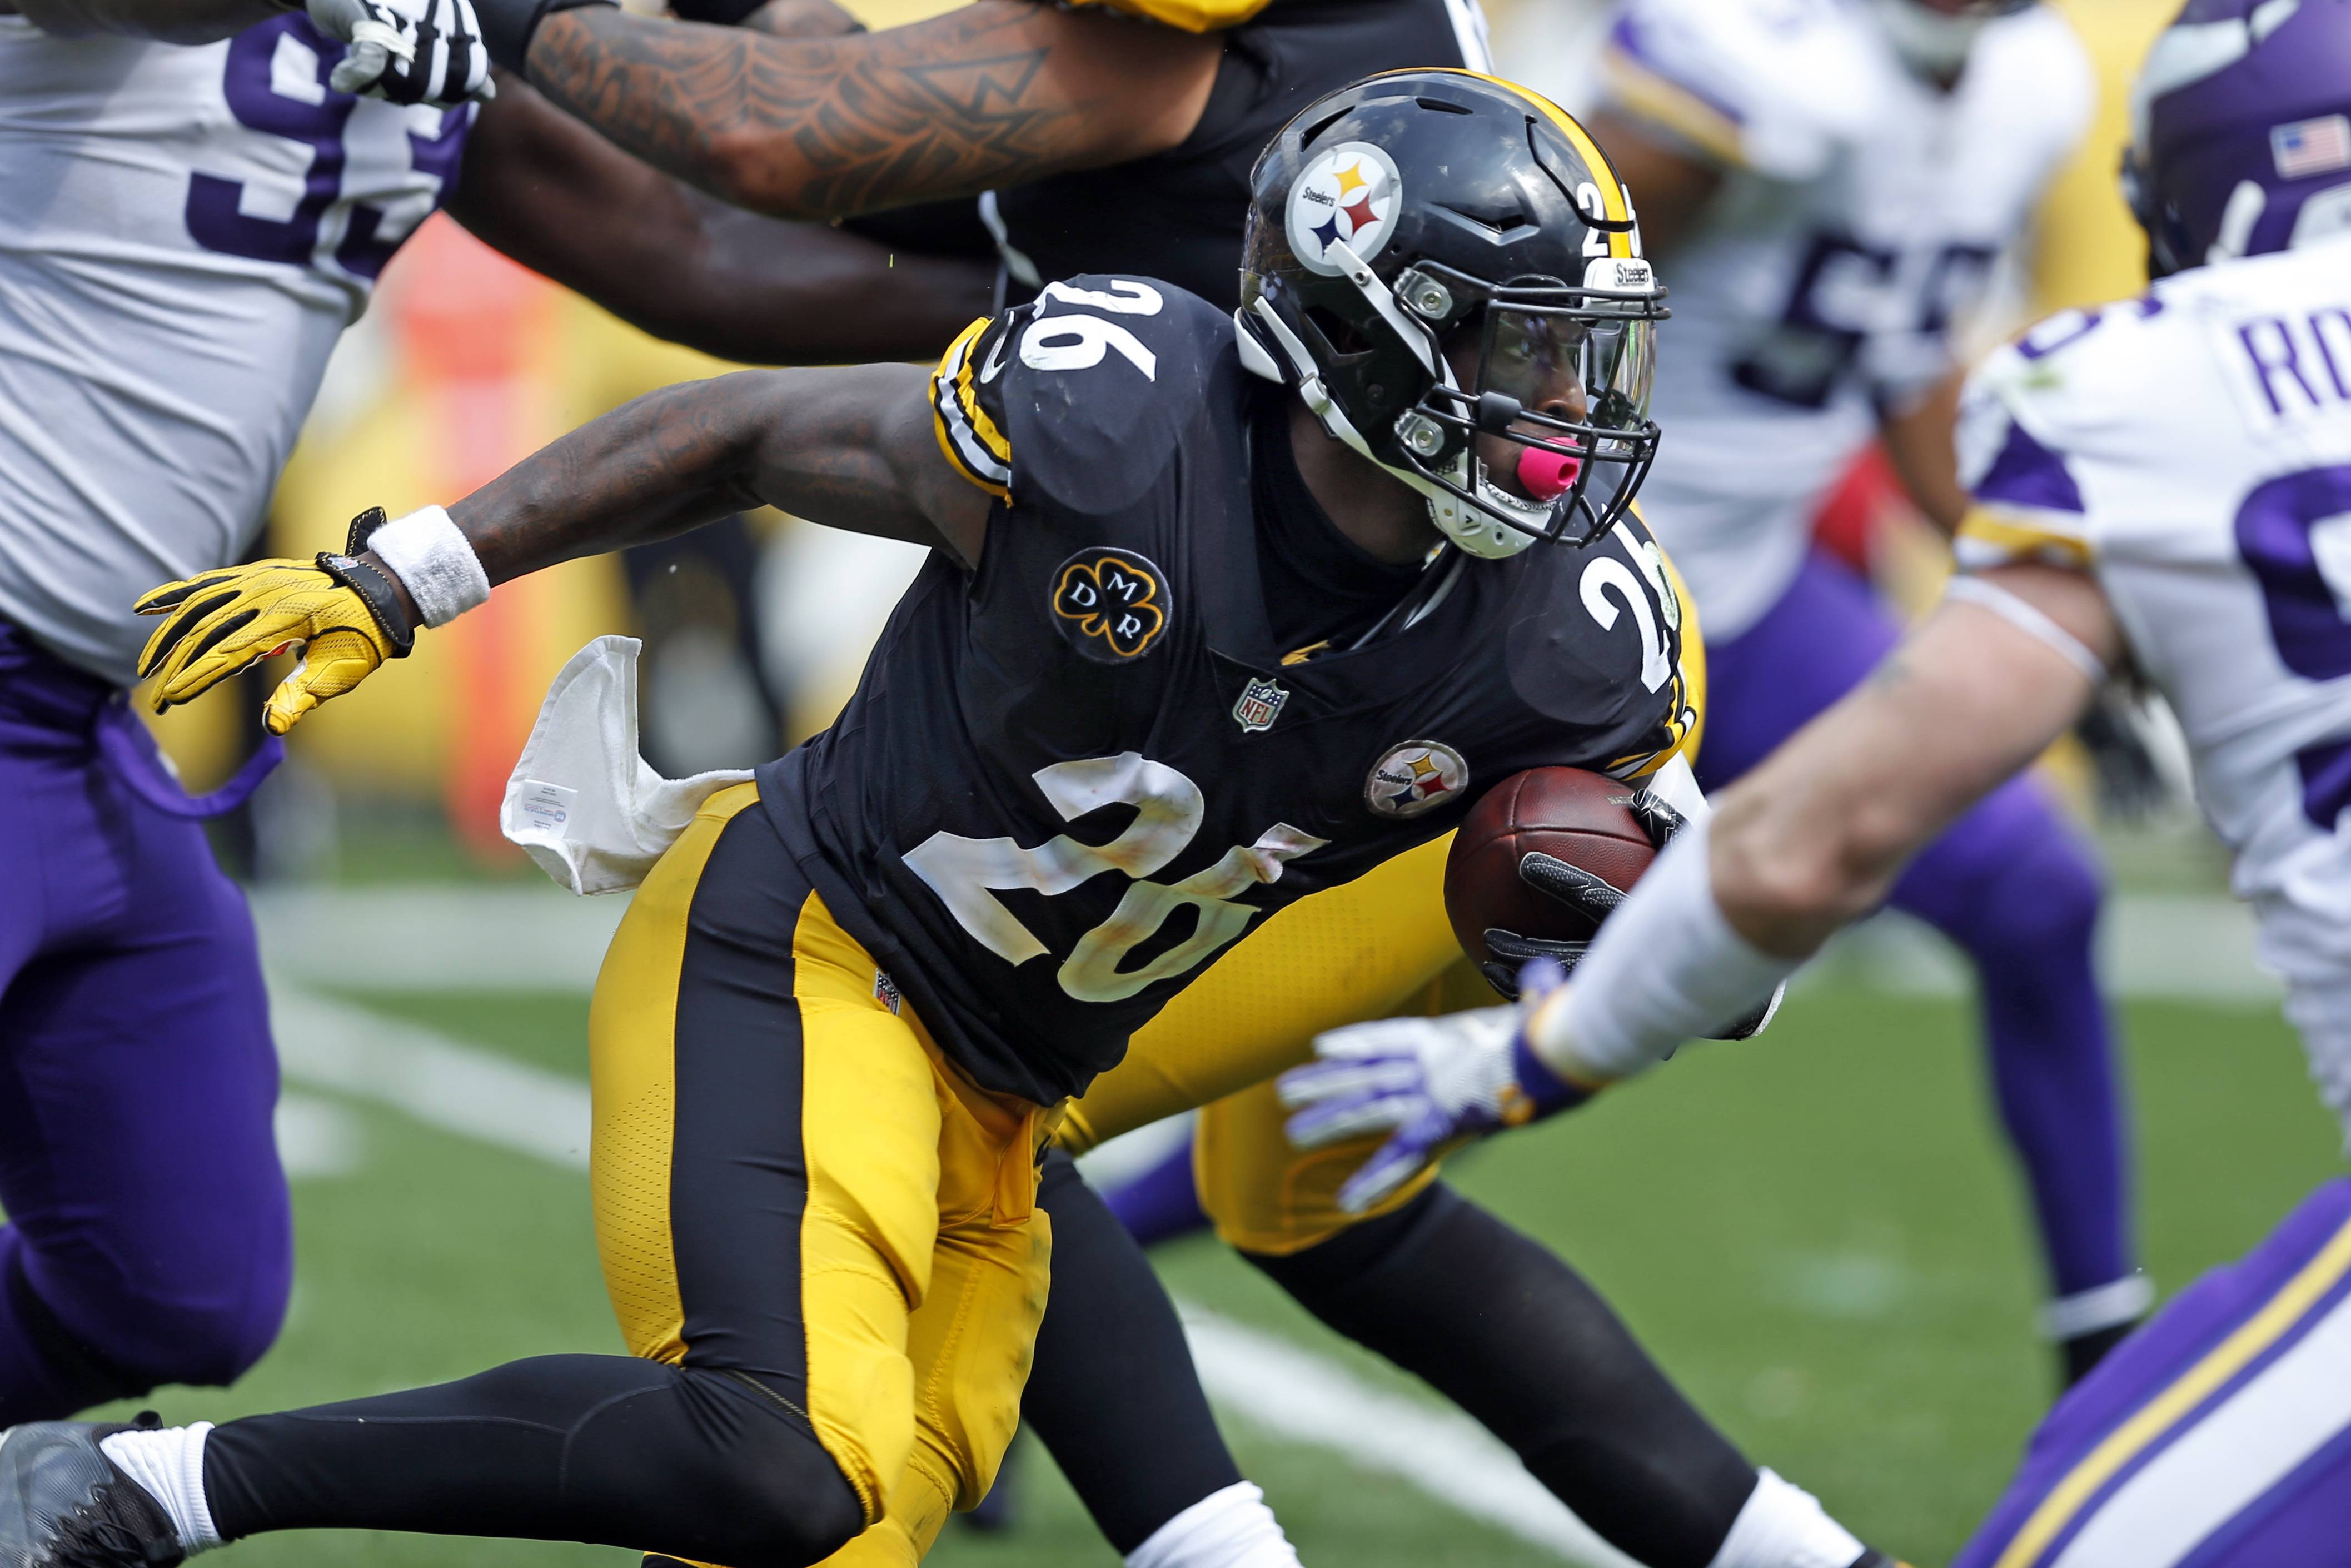 Pittsburgh Steelers running back Le'Veon Bell (26) carries the ball during the first half of an NFL football game against the Minnesota Vikings in Pittsburgh, Sunday, Sept. 17, 2017. (AP Photo/Keith Srakocic)